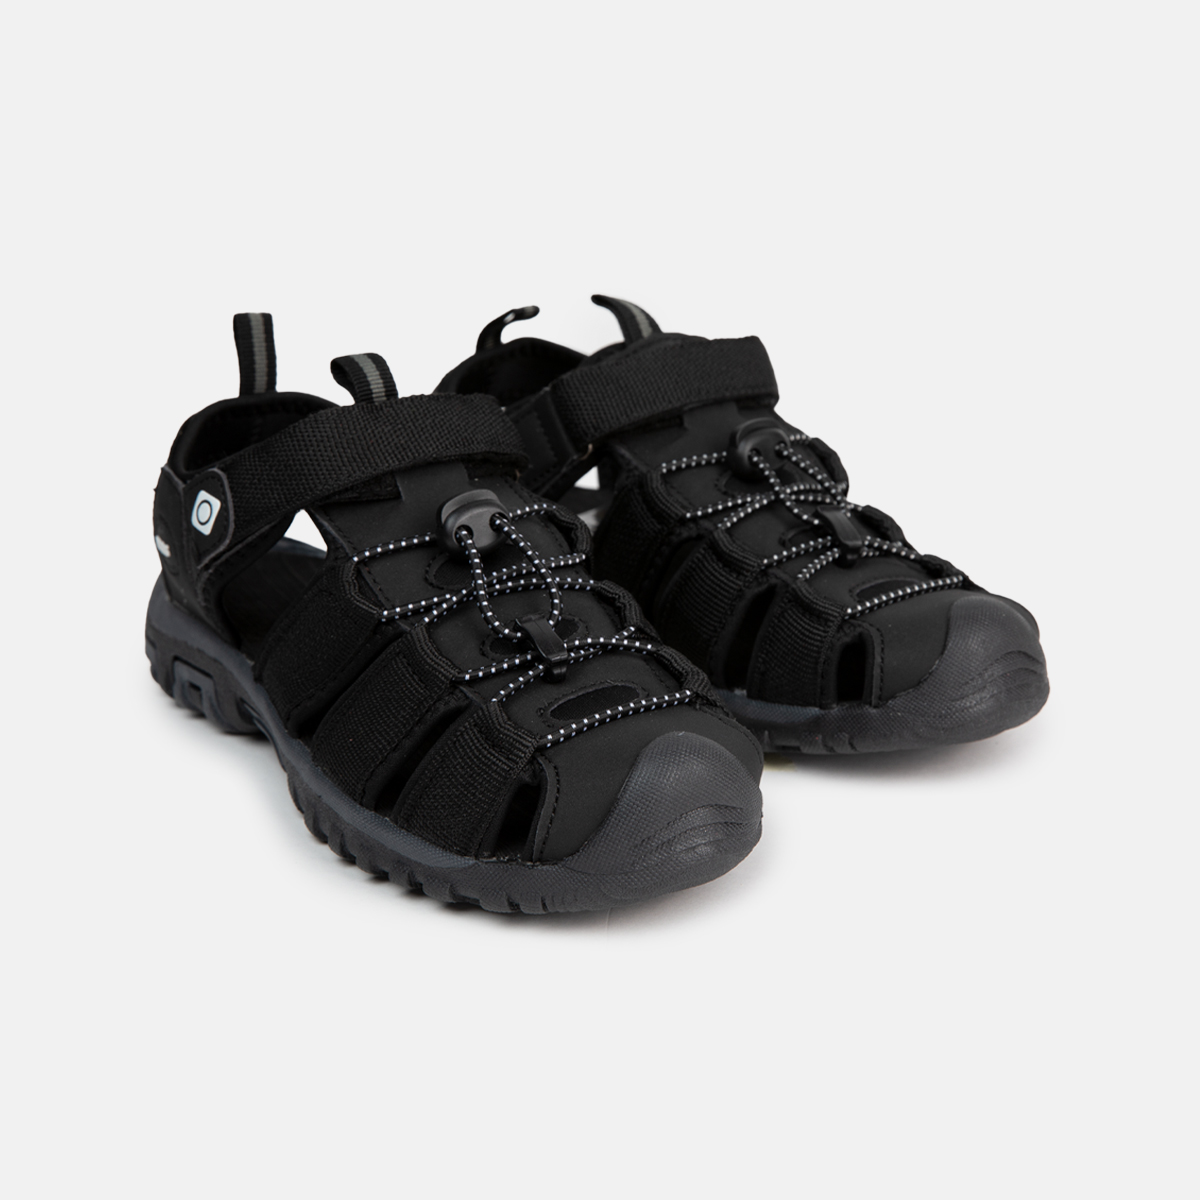 UNISEX'S FROSTY II SANDALS BLACK